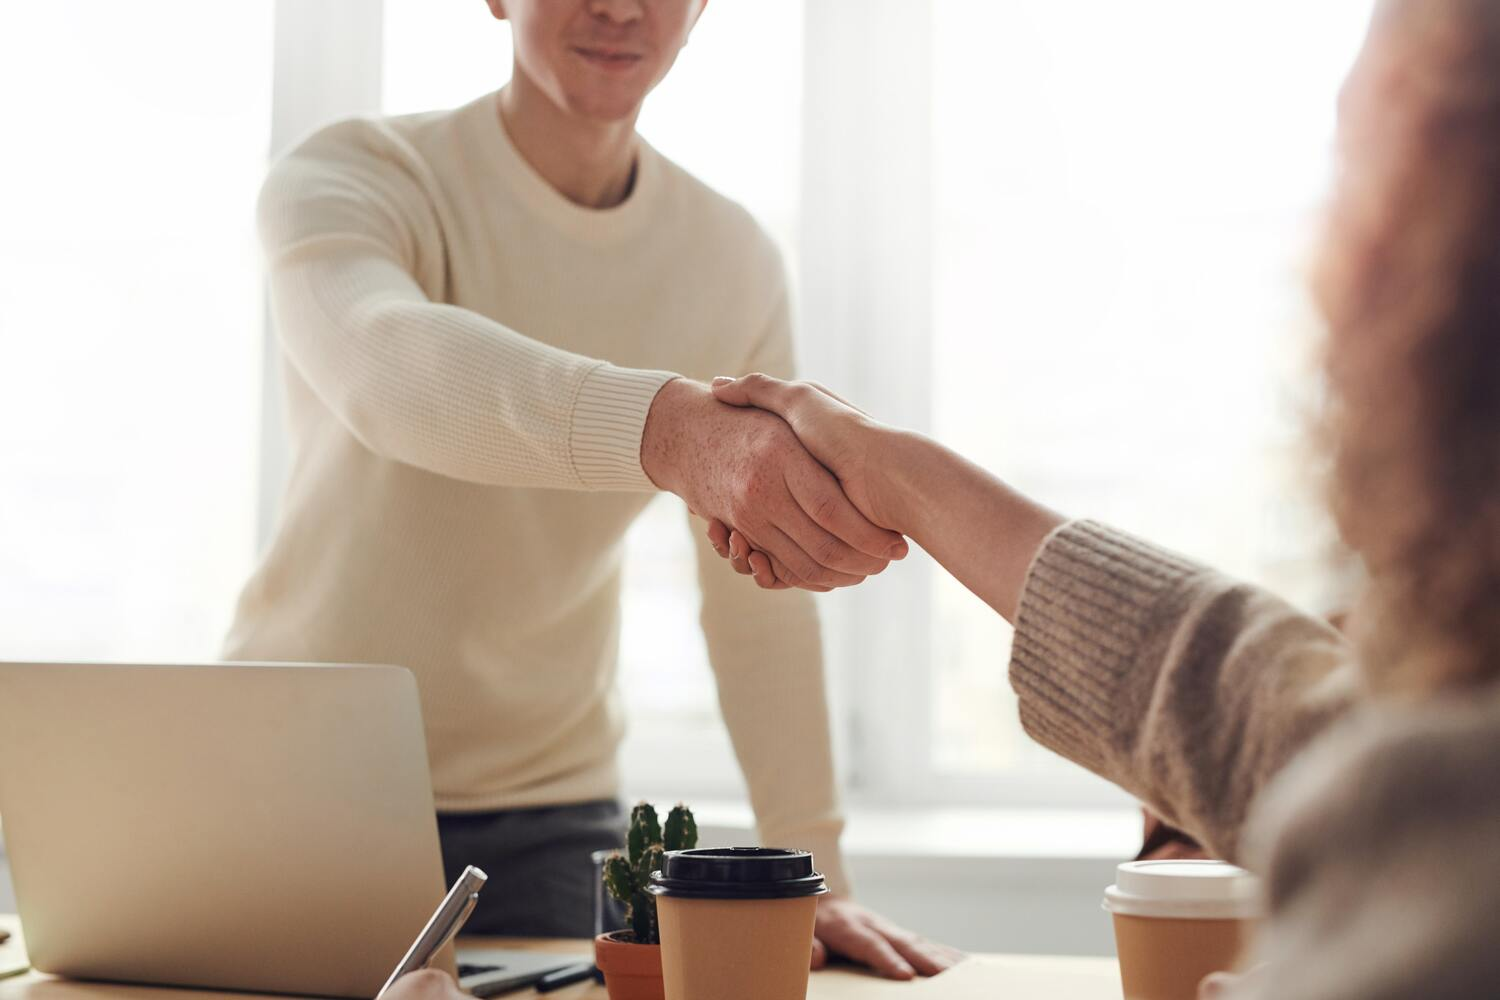 Two copywriters shake hands in an office after being hired